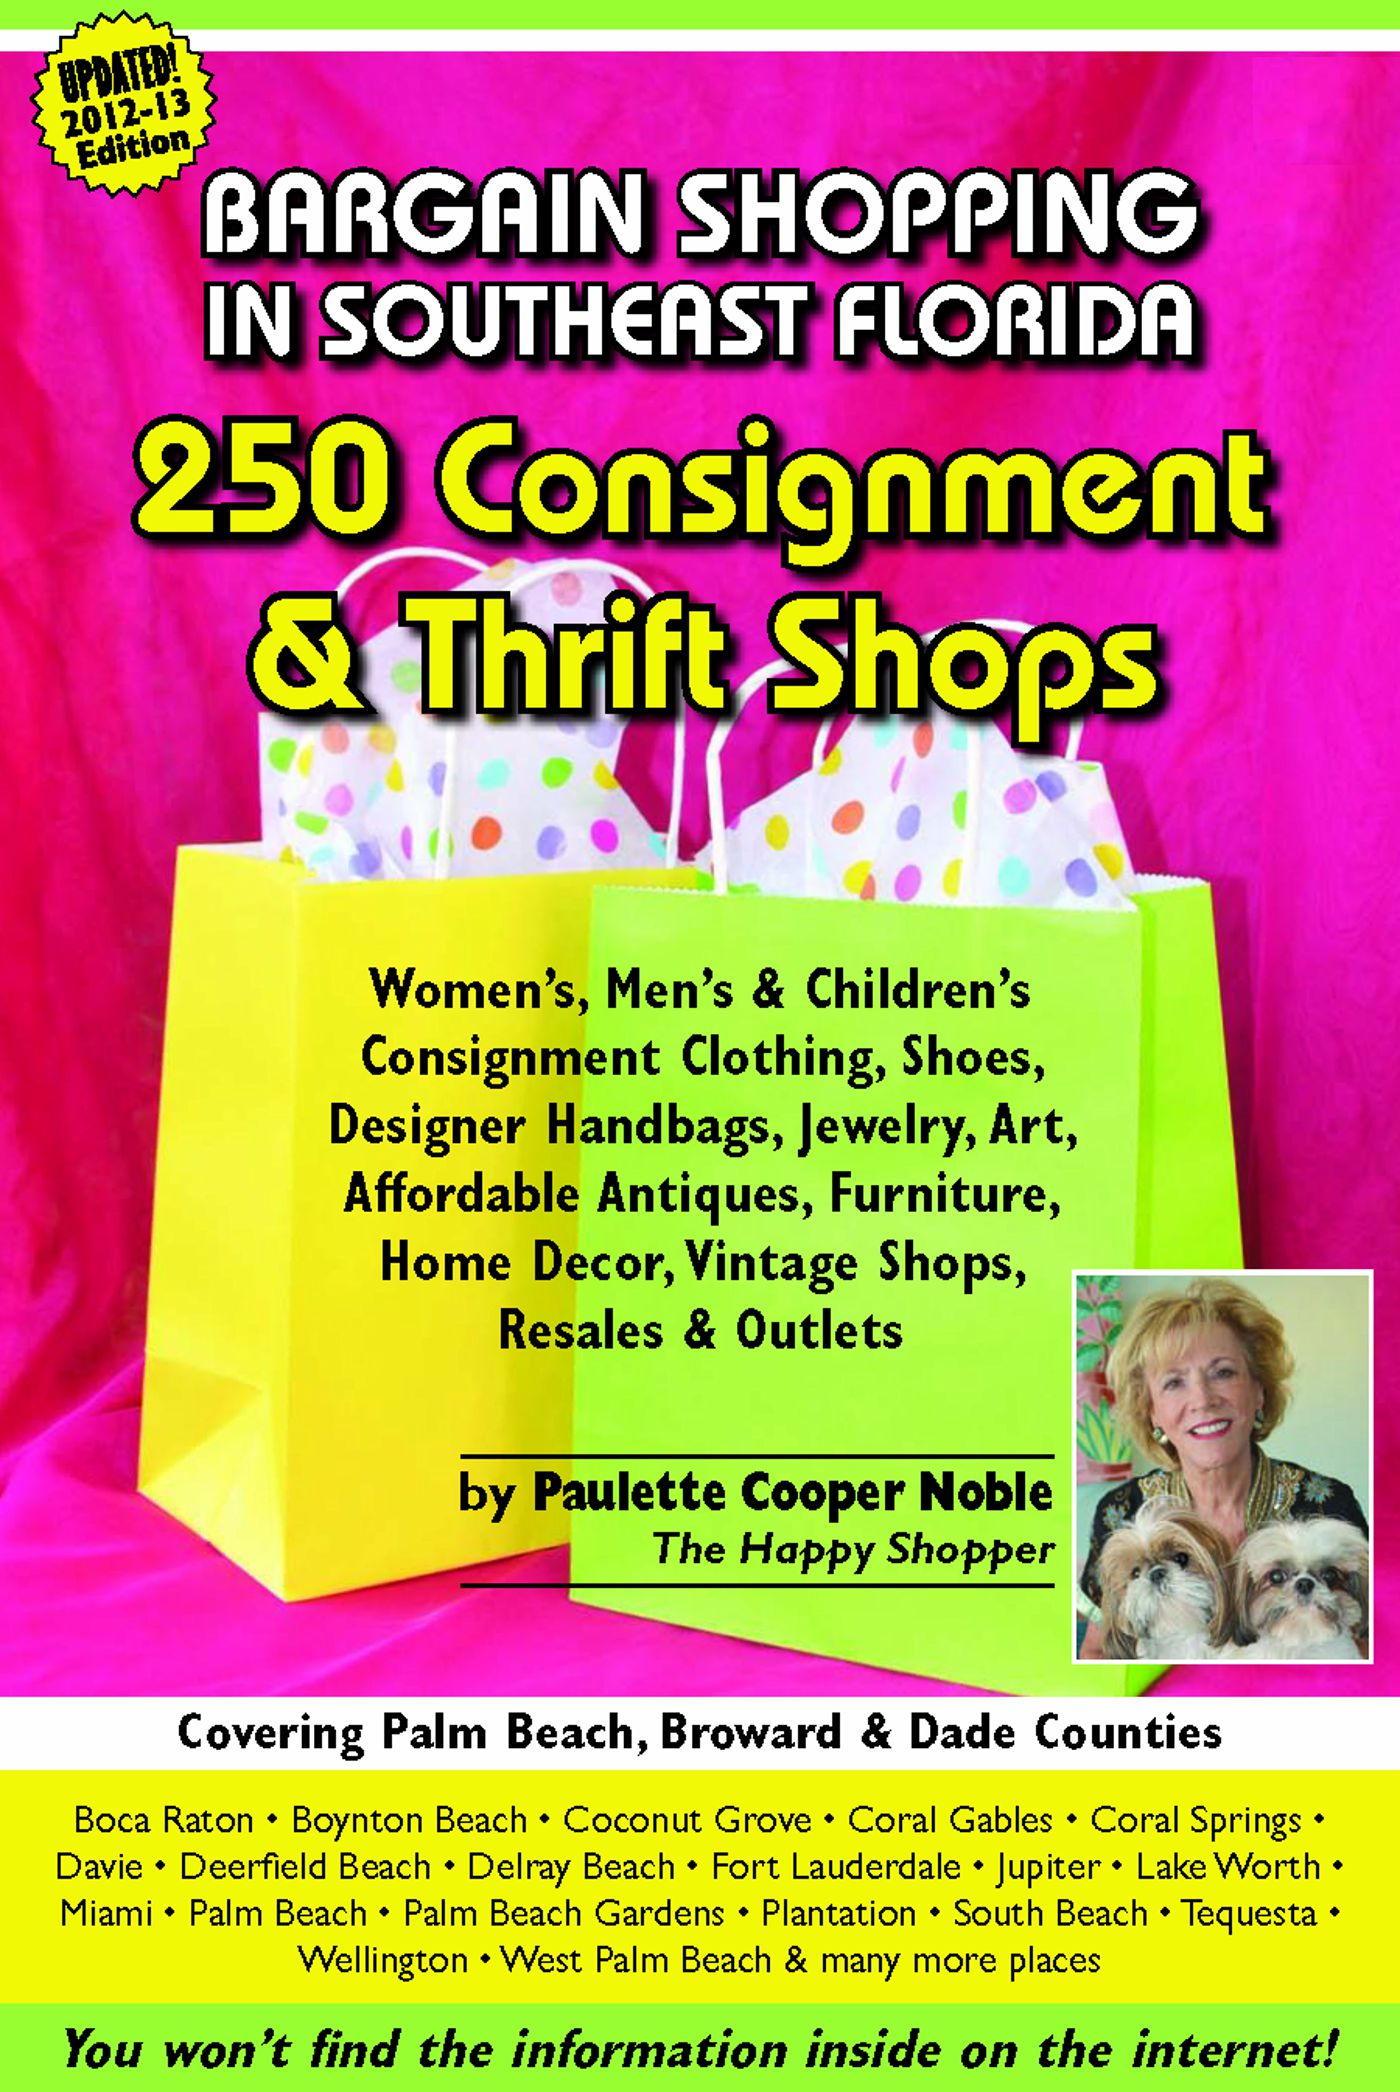 Paulette Cooper (Noble) - Bargain Shopping in Southeast Florida: 250 Consignment & Thrift Shops in Boca Raton, Palm Beach, Fort Lauderdale, Miami & More